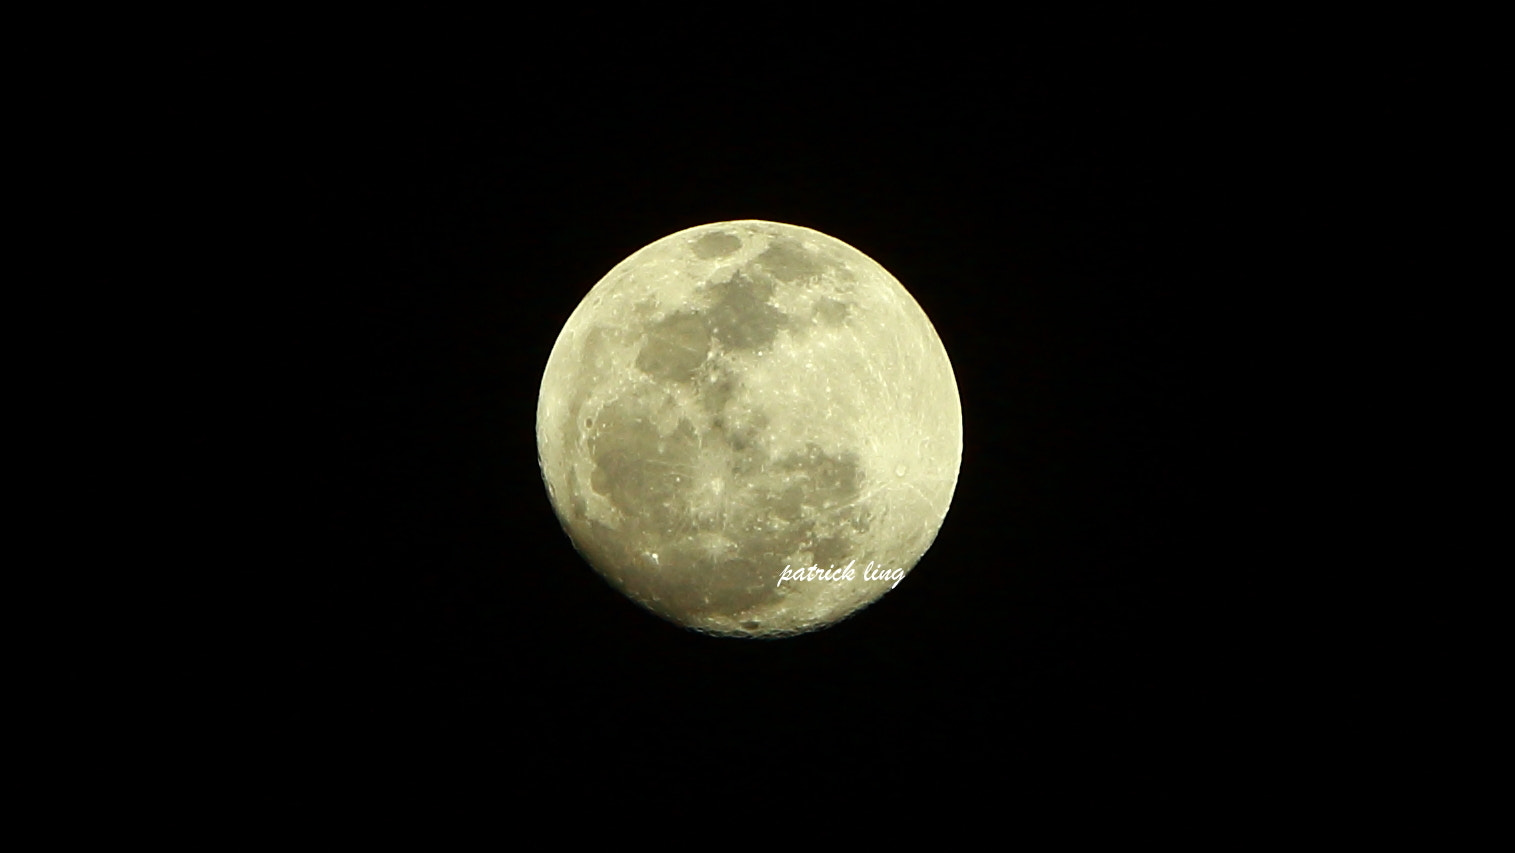 Photograph when Full Moon by Patrick Ling on 500px